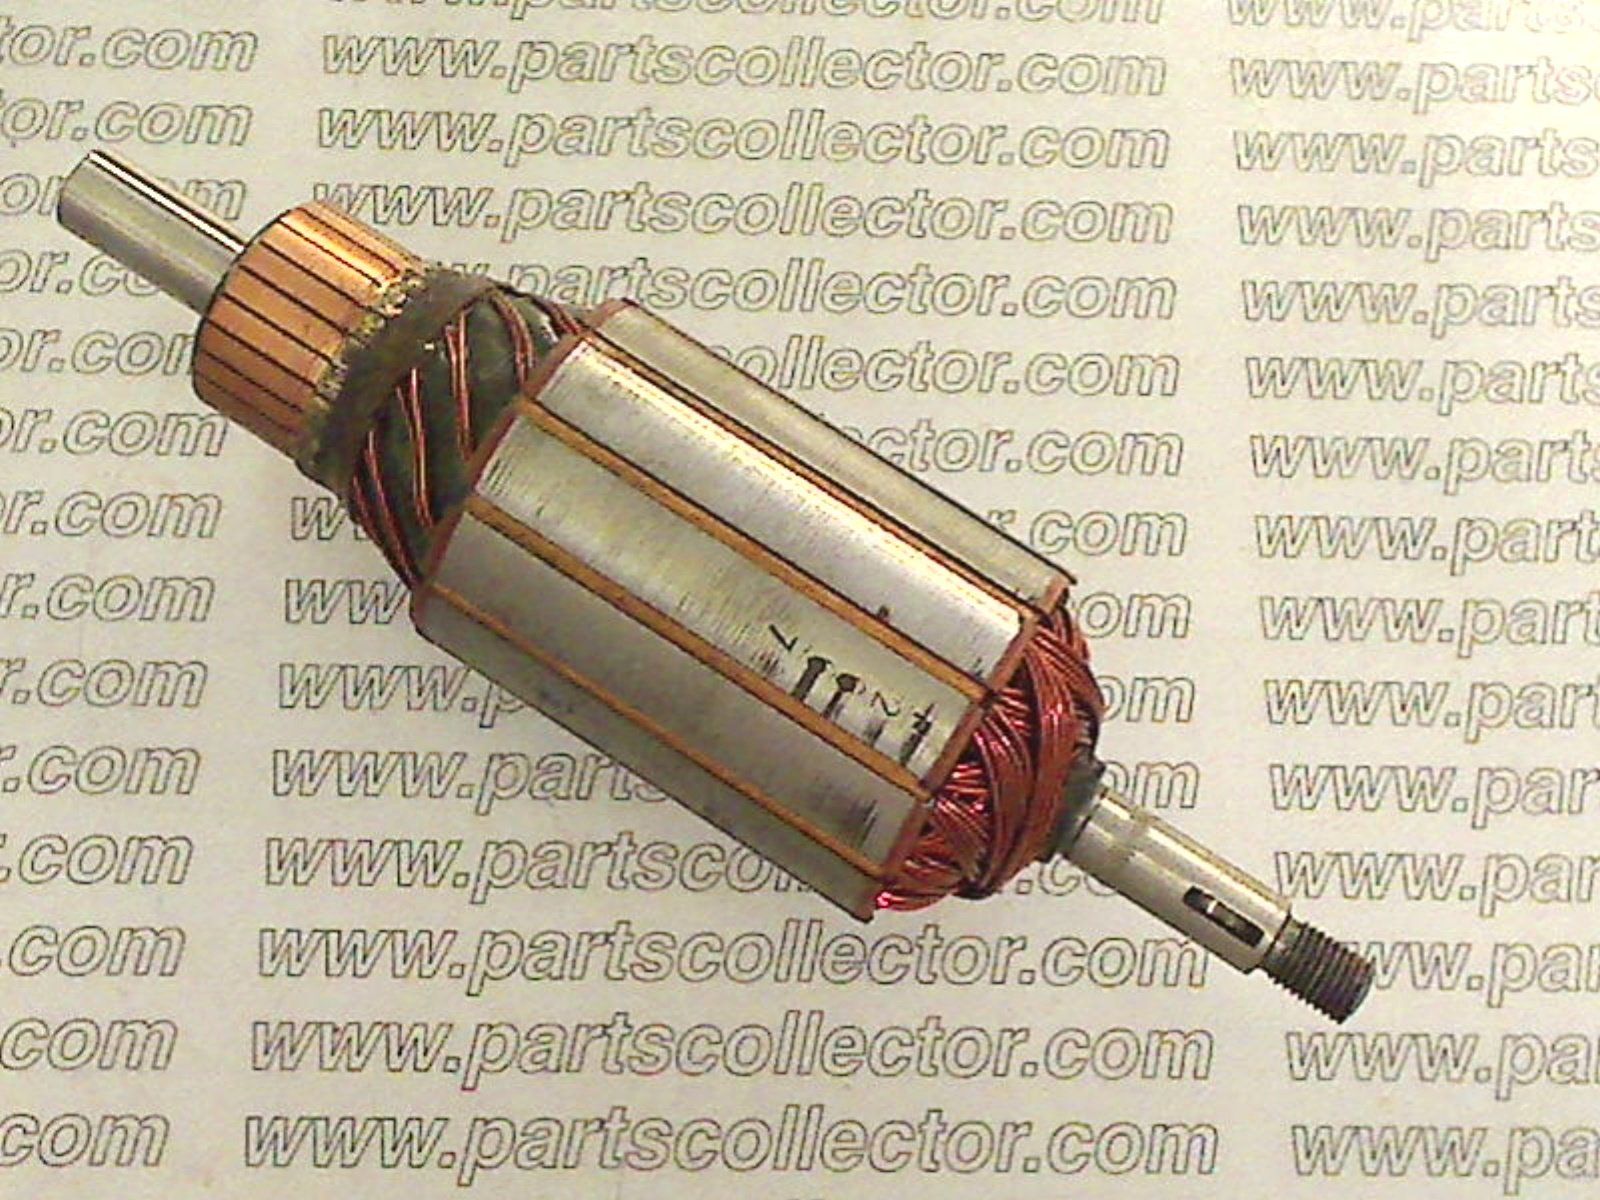 partscomr audi electrical fuse and relay fuse fuse partnumber newpartscollectorpartscomr audi electrical fuse and relay fuse fuse partnumber 20